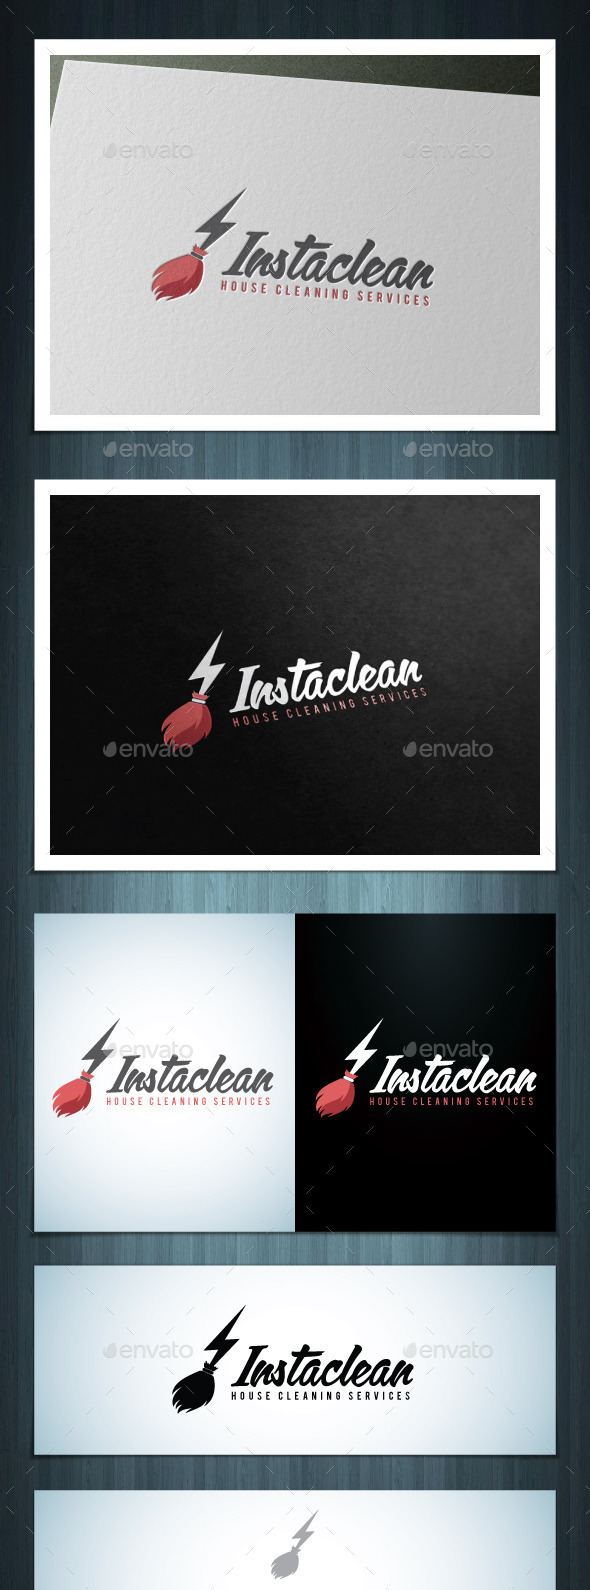 Instaclean - Vector Abstract